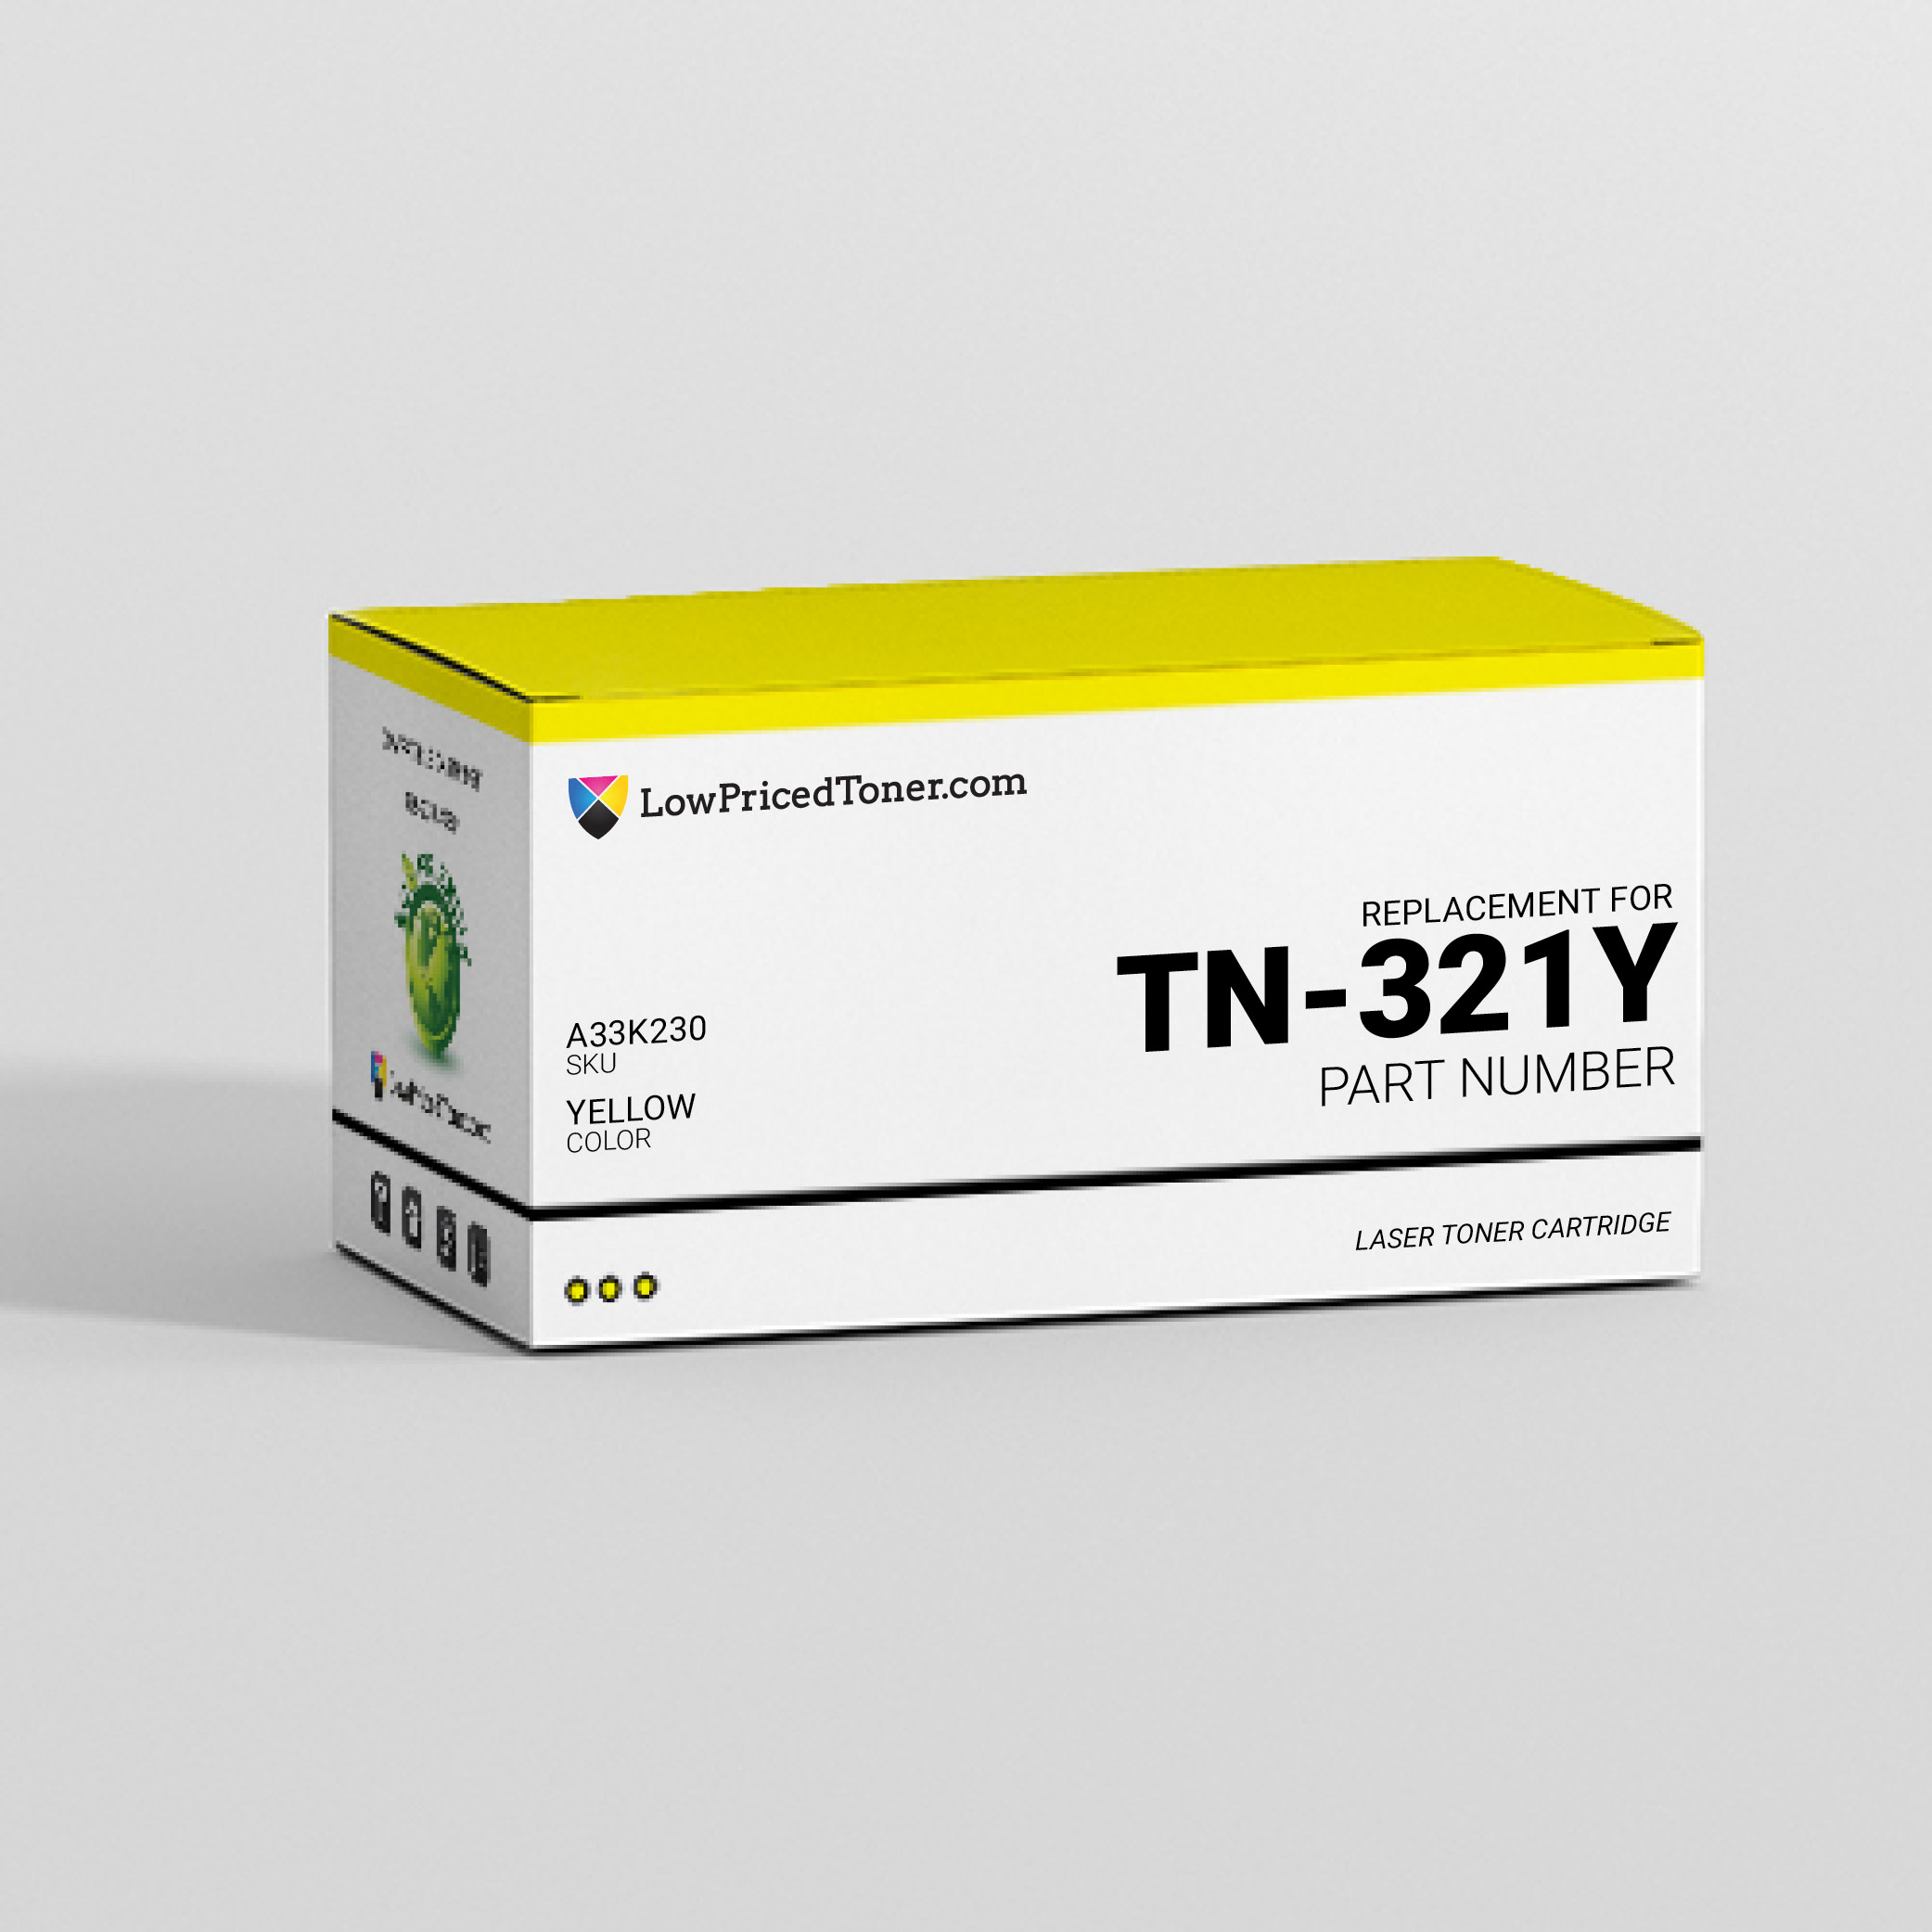 Develop and Konica and Minolta and Muratec and Olivetti A33K230 TN-321Y Compatible Yellow Laser Toner Cartridge